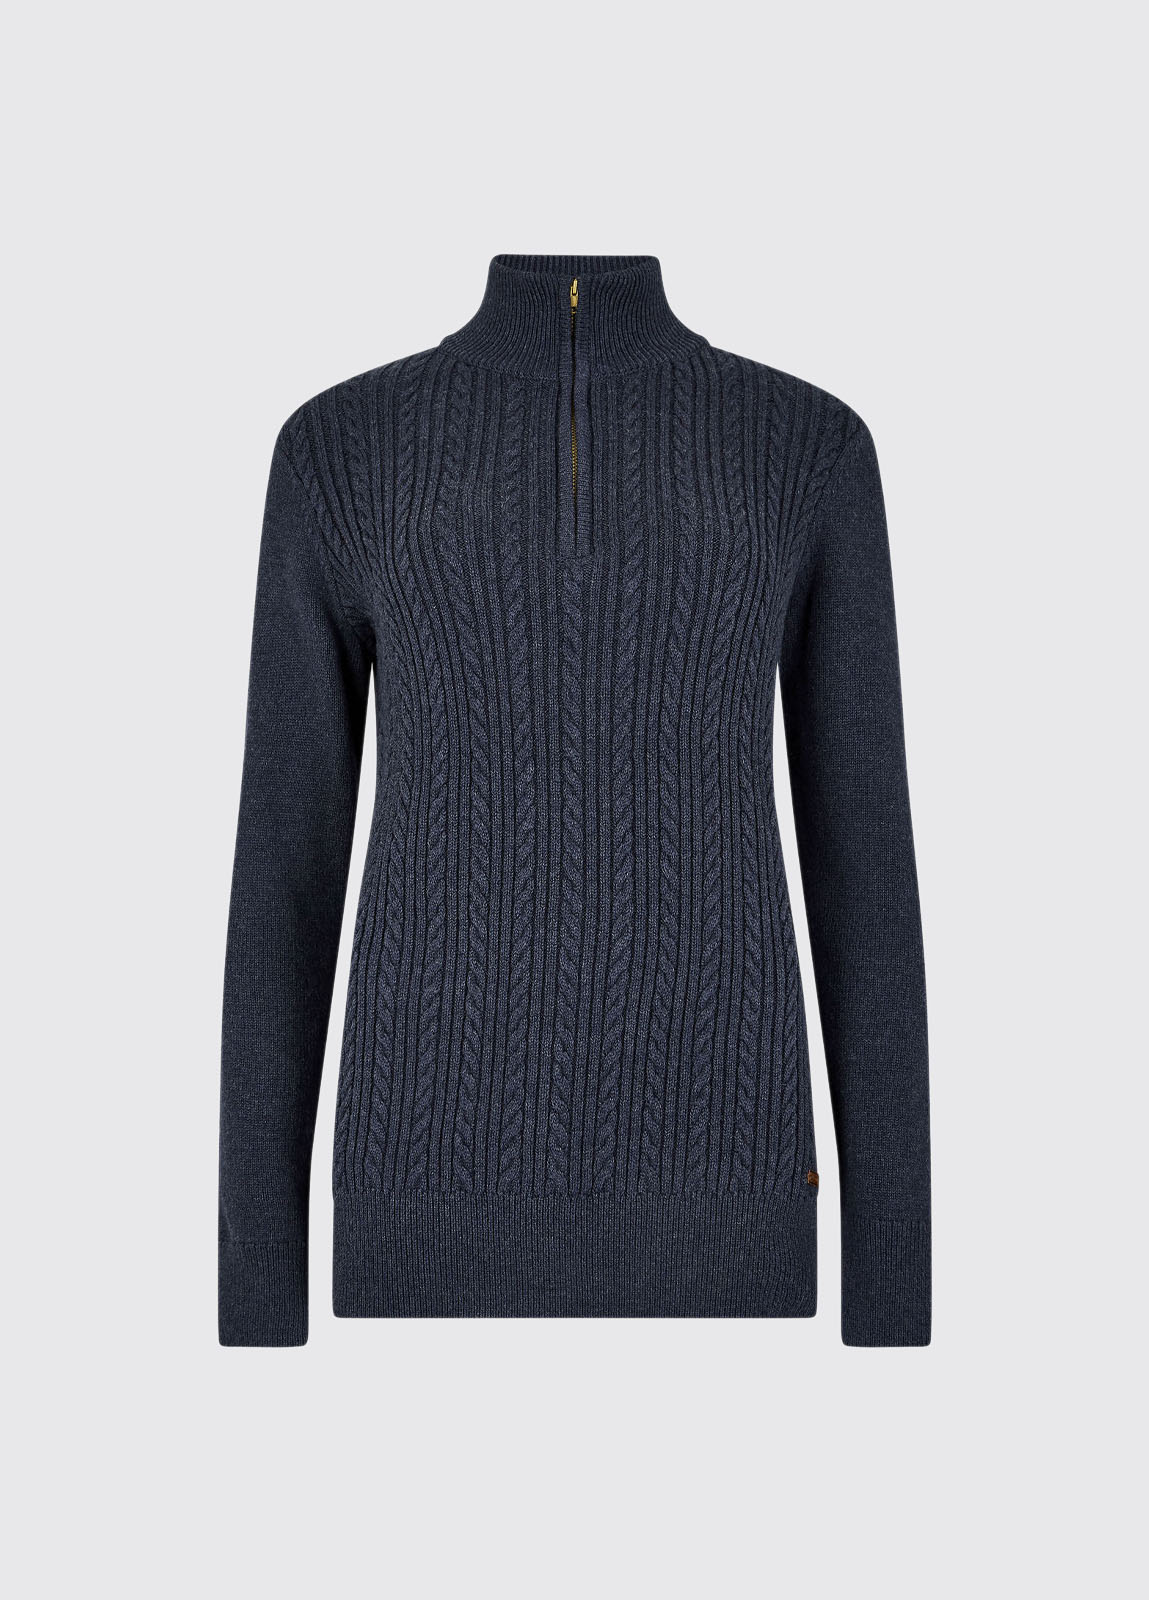 Garvey Knitted Sweater - French Navy